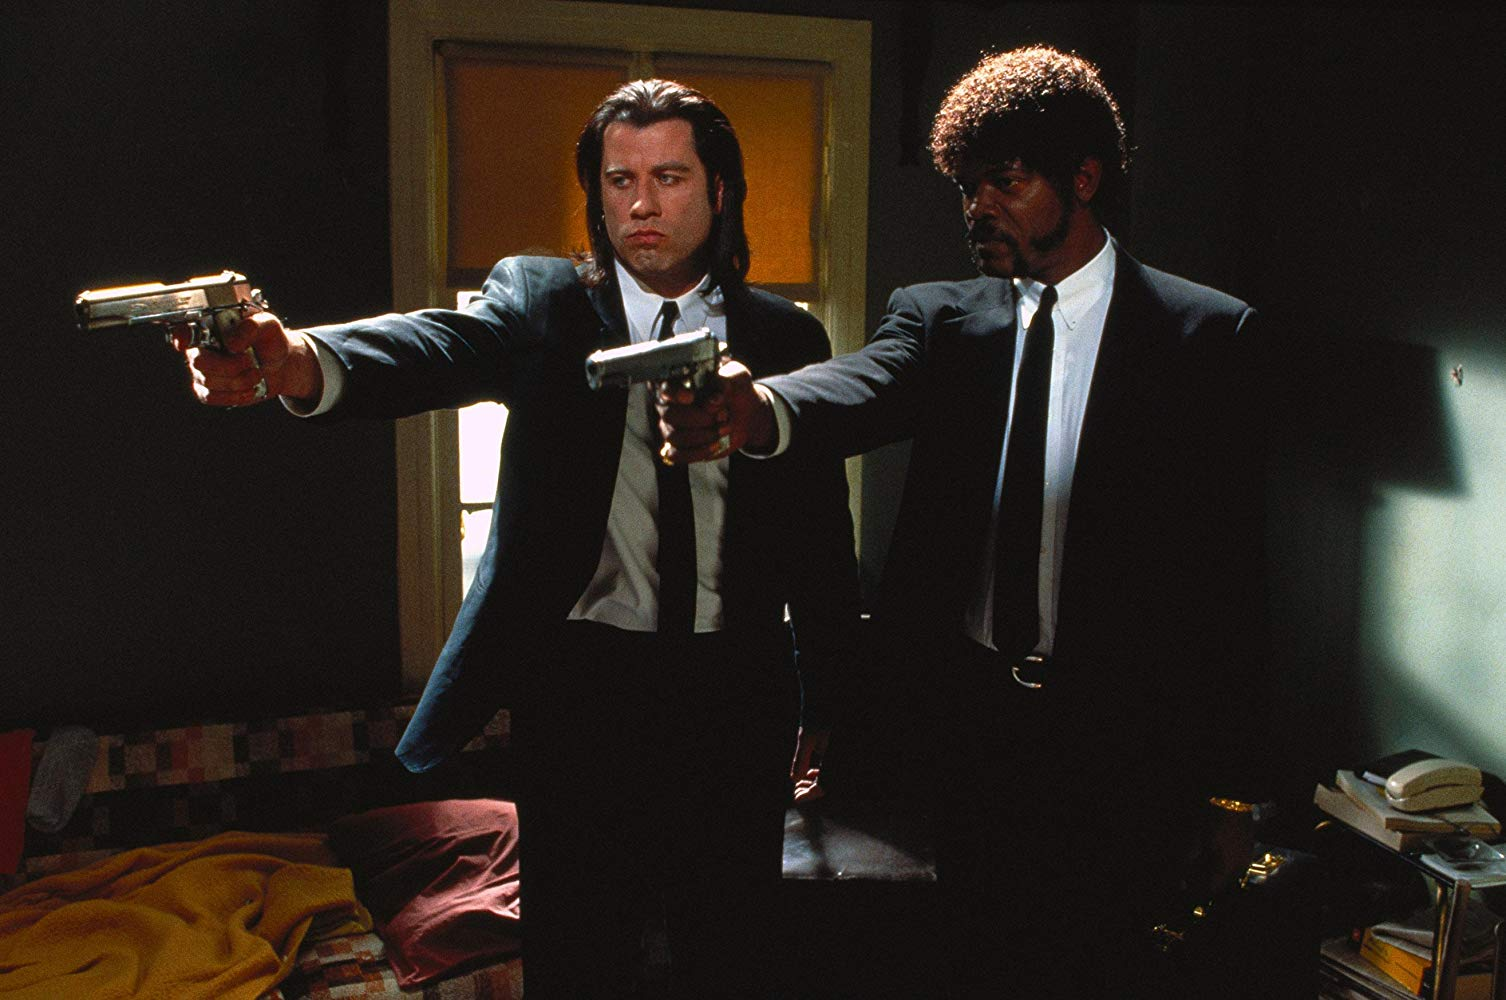 6. Pulp Fiction (1994)